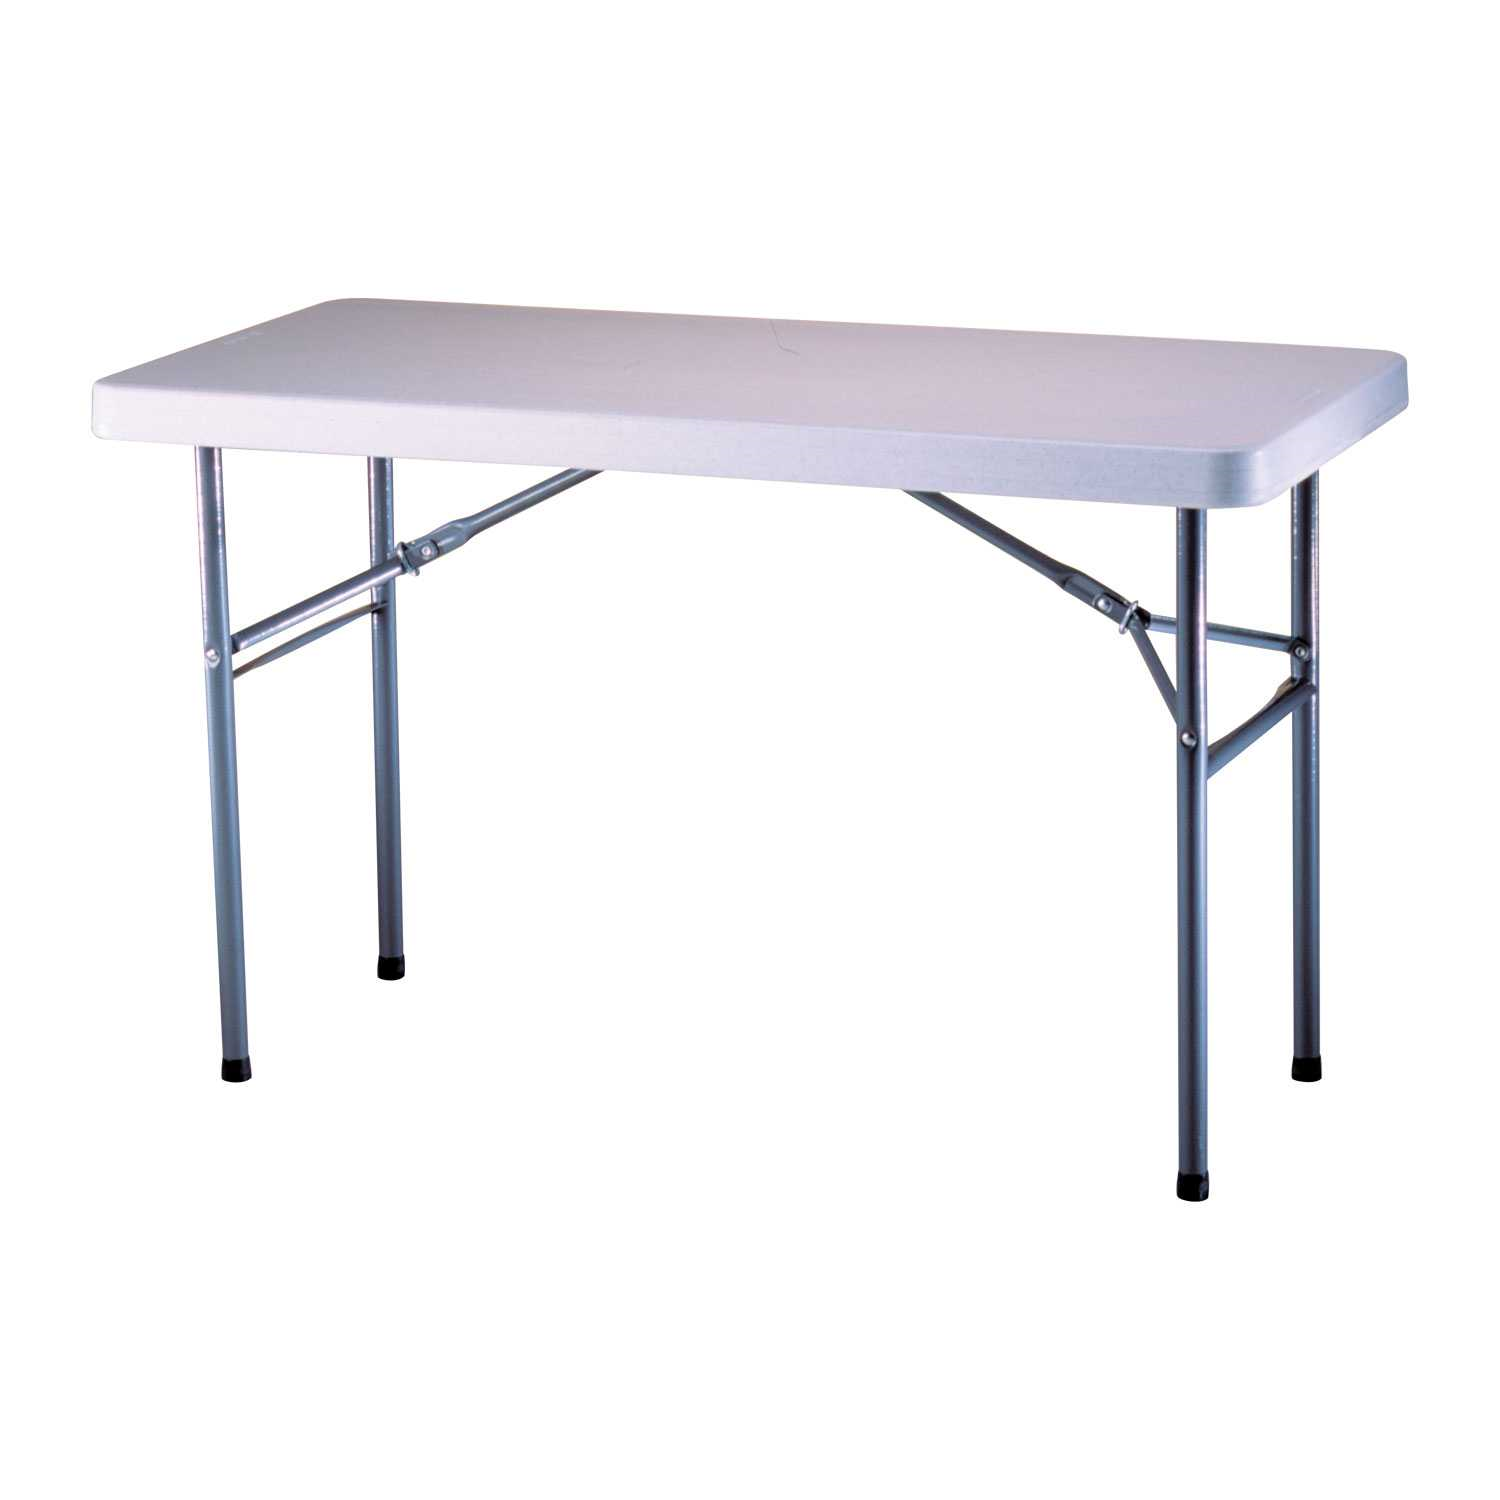 Lifetime 4-Foot Folding Table (Commercial)